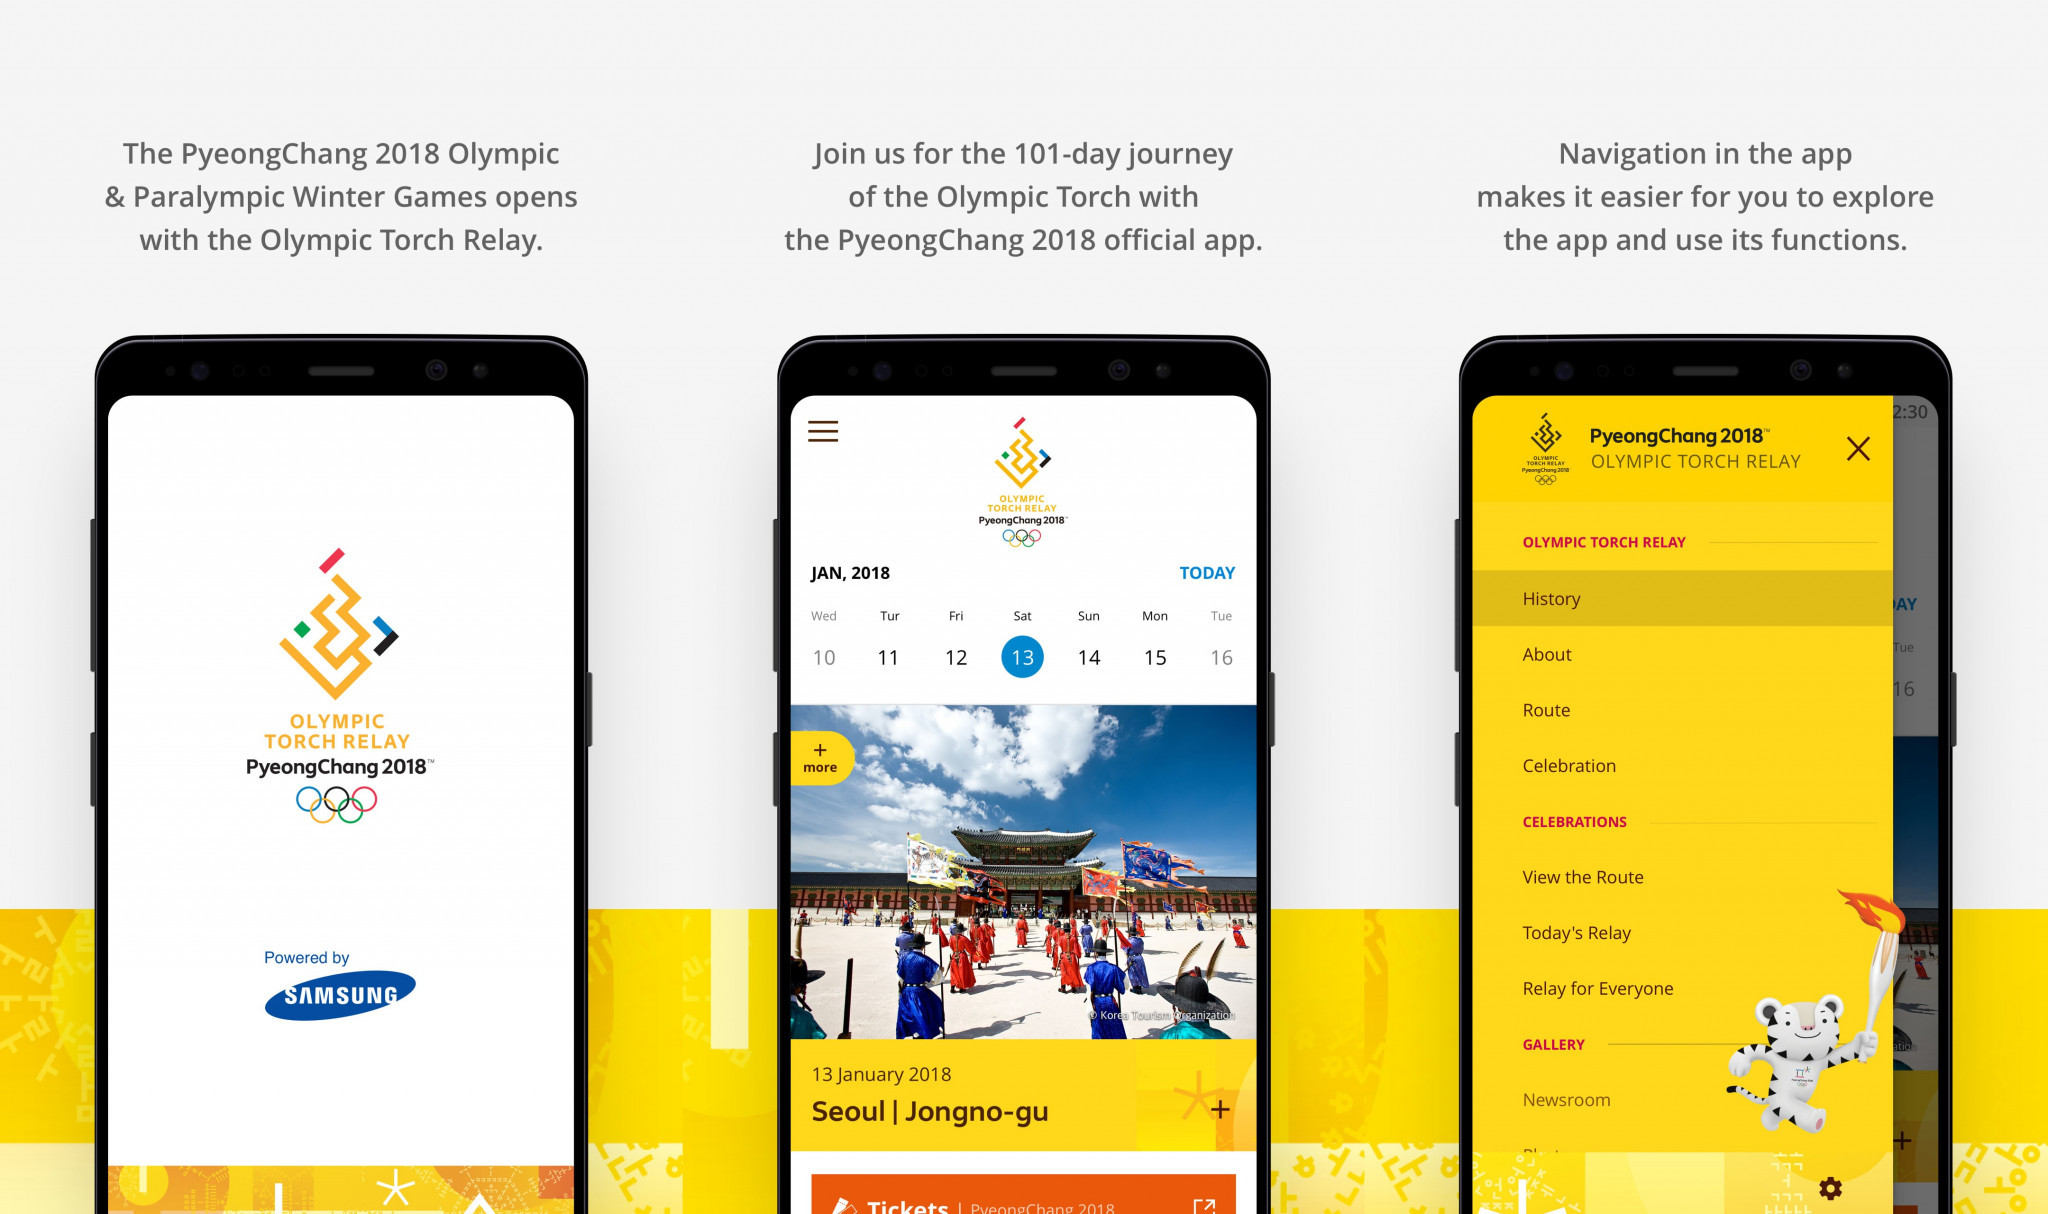 Pyeongchang 2018 launches official app